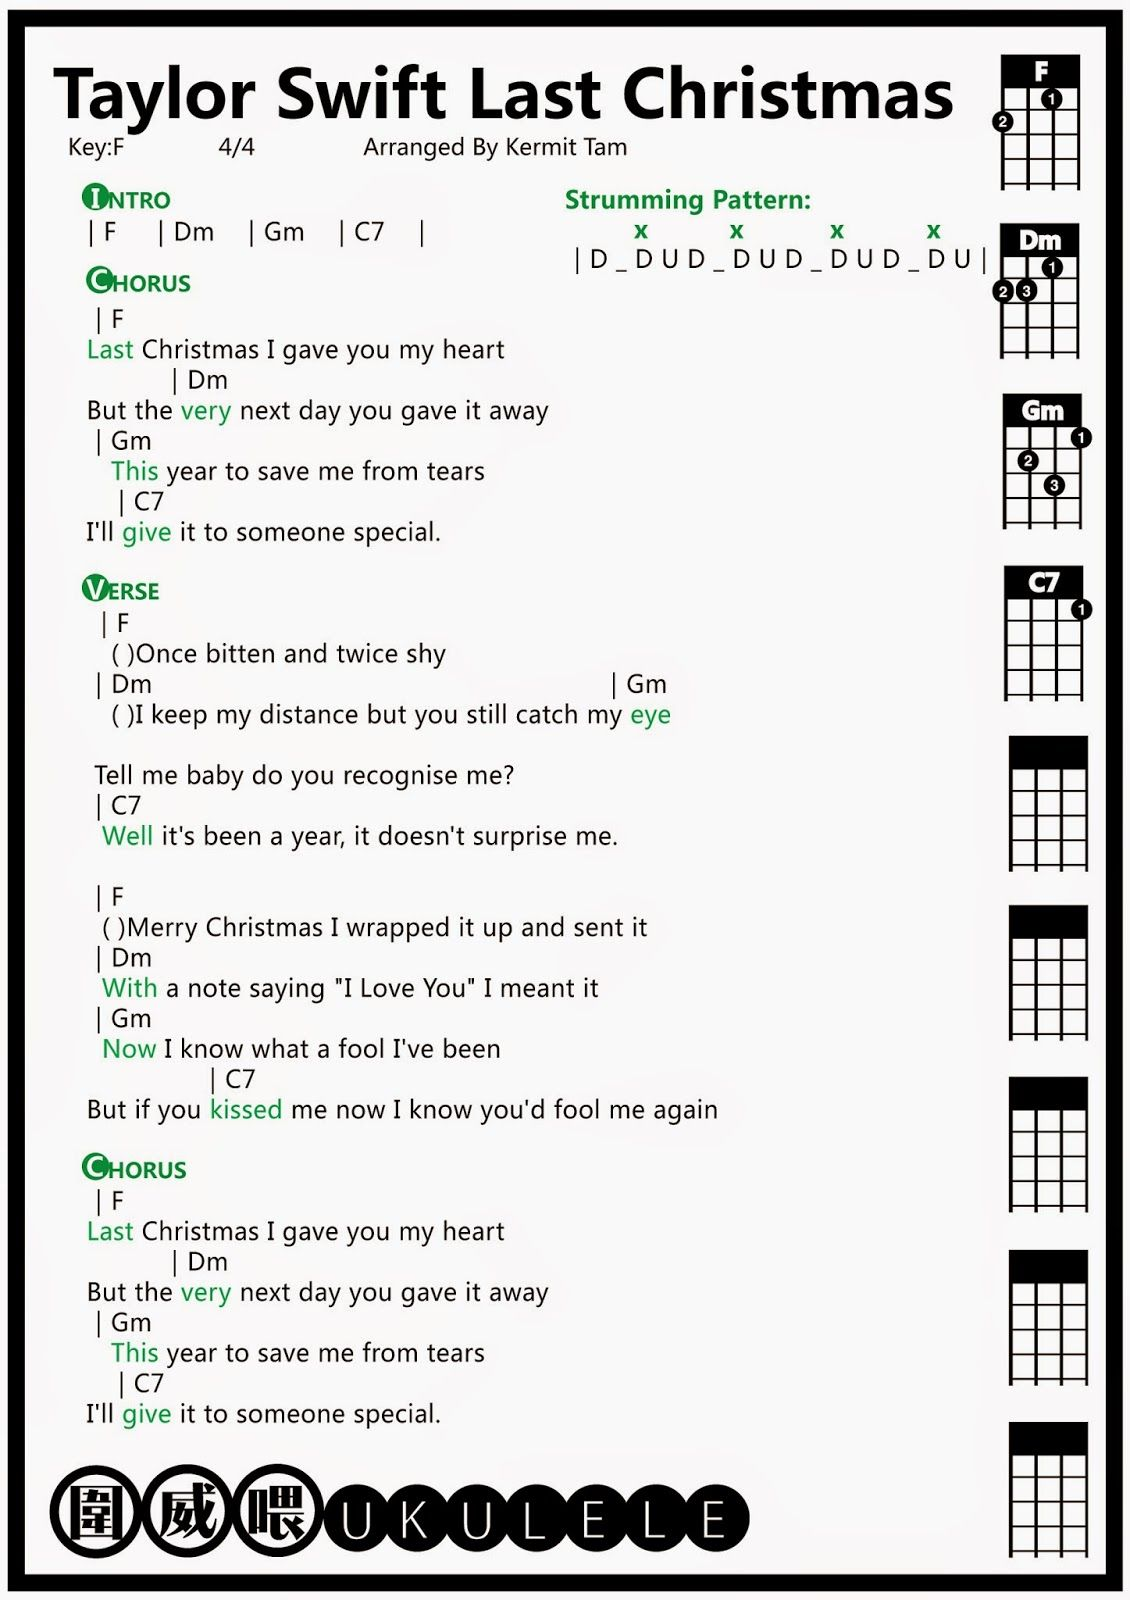 Ŝå¨å–' Ukulele Taylor Swift Last Christmas Ukulele譜 Ukelele Chords Ukulele Songs Ukulele Songs Beginner Ukulele Songs